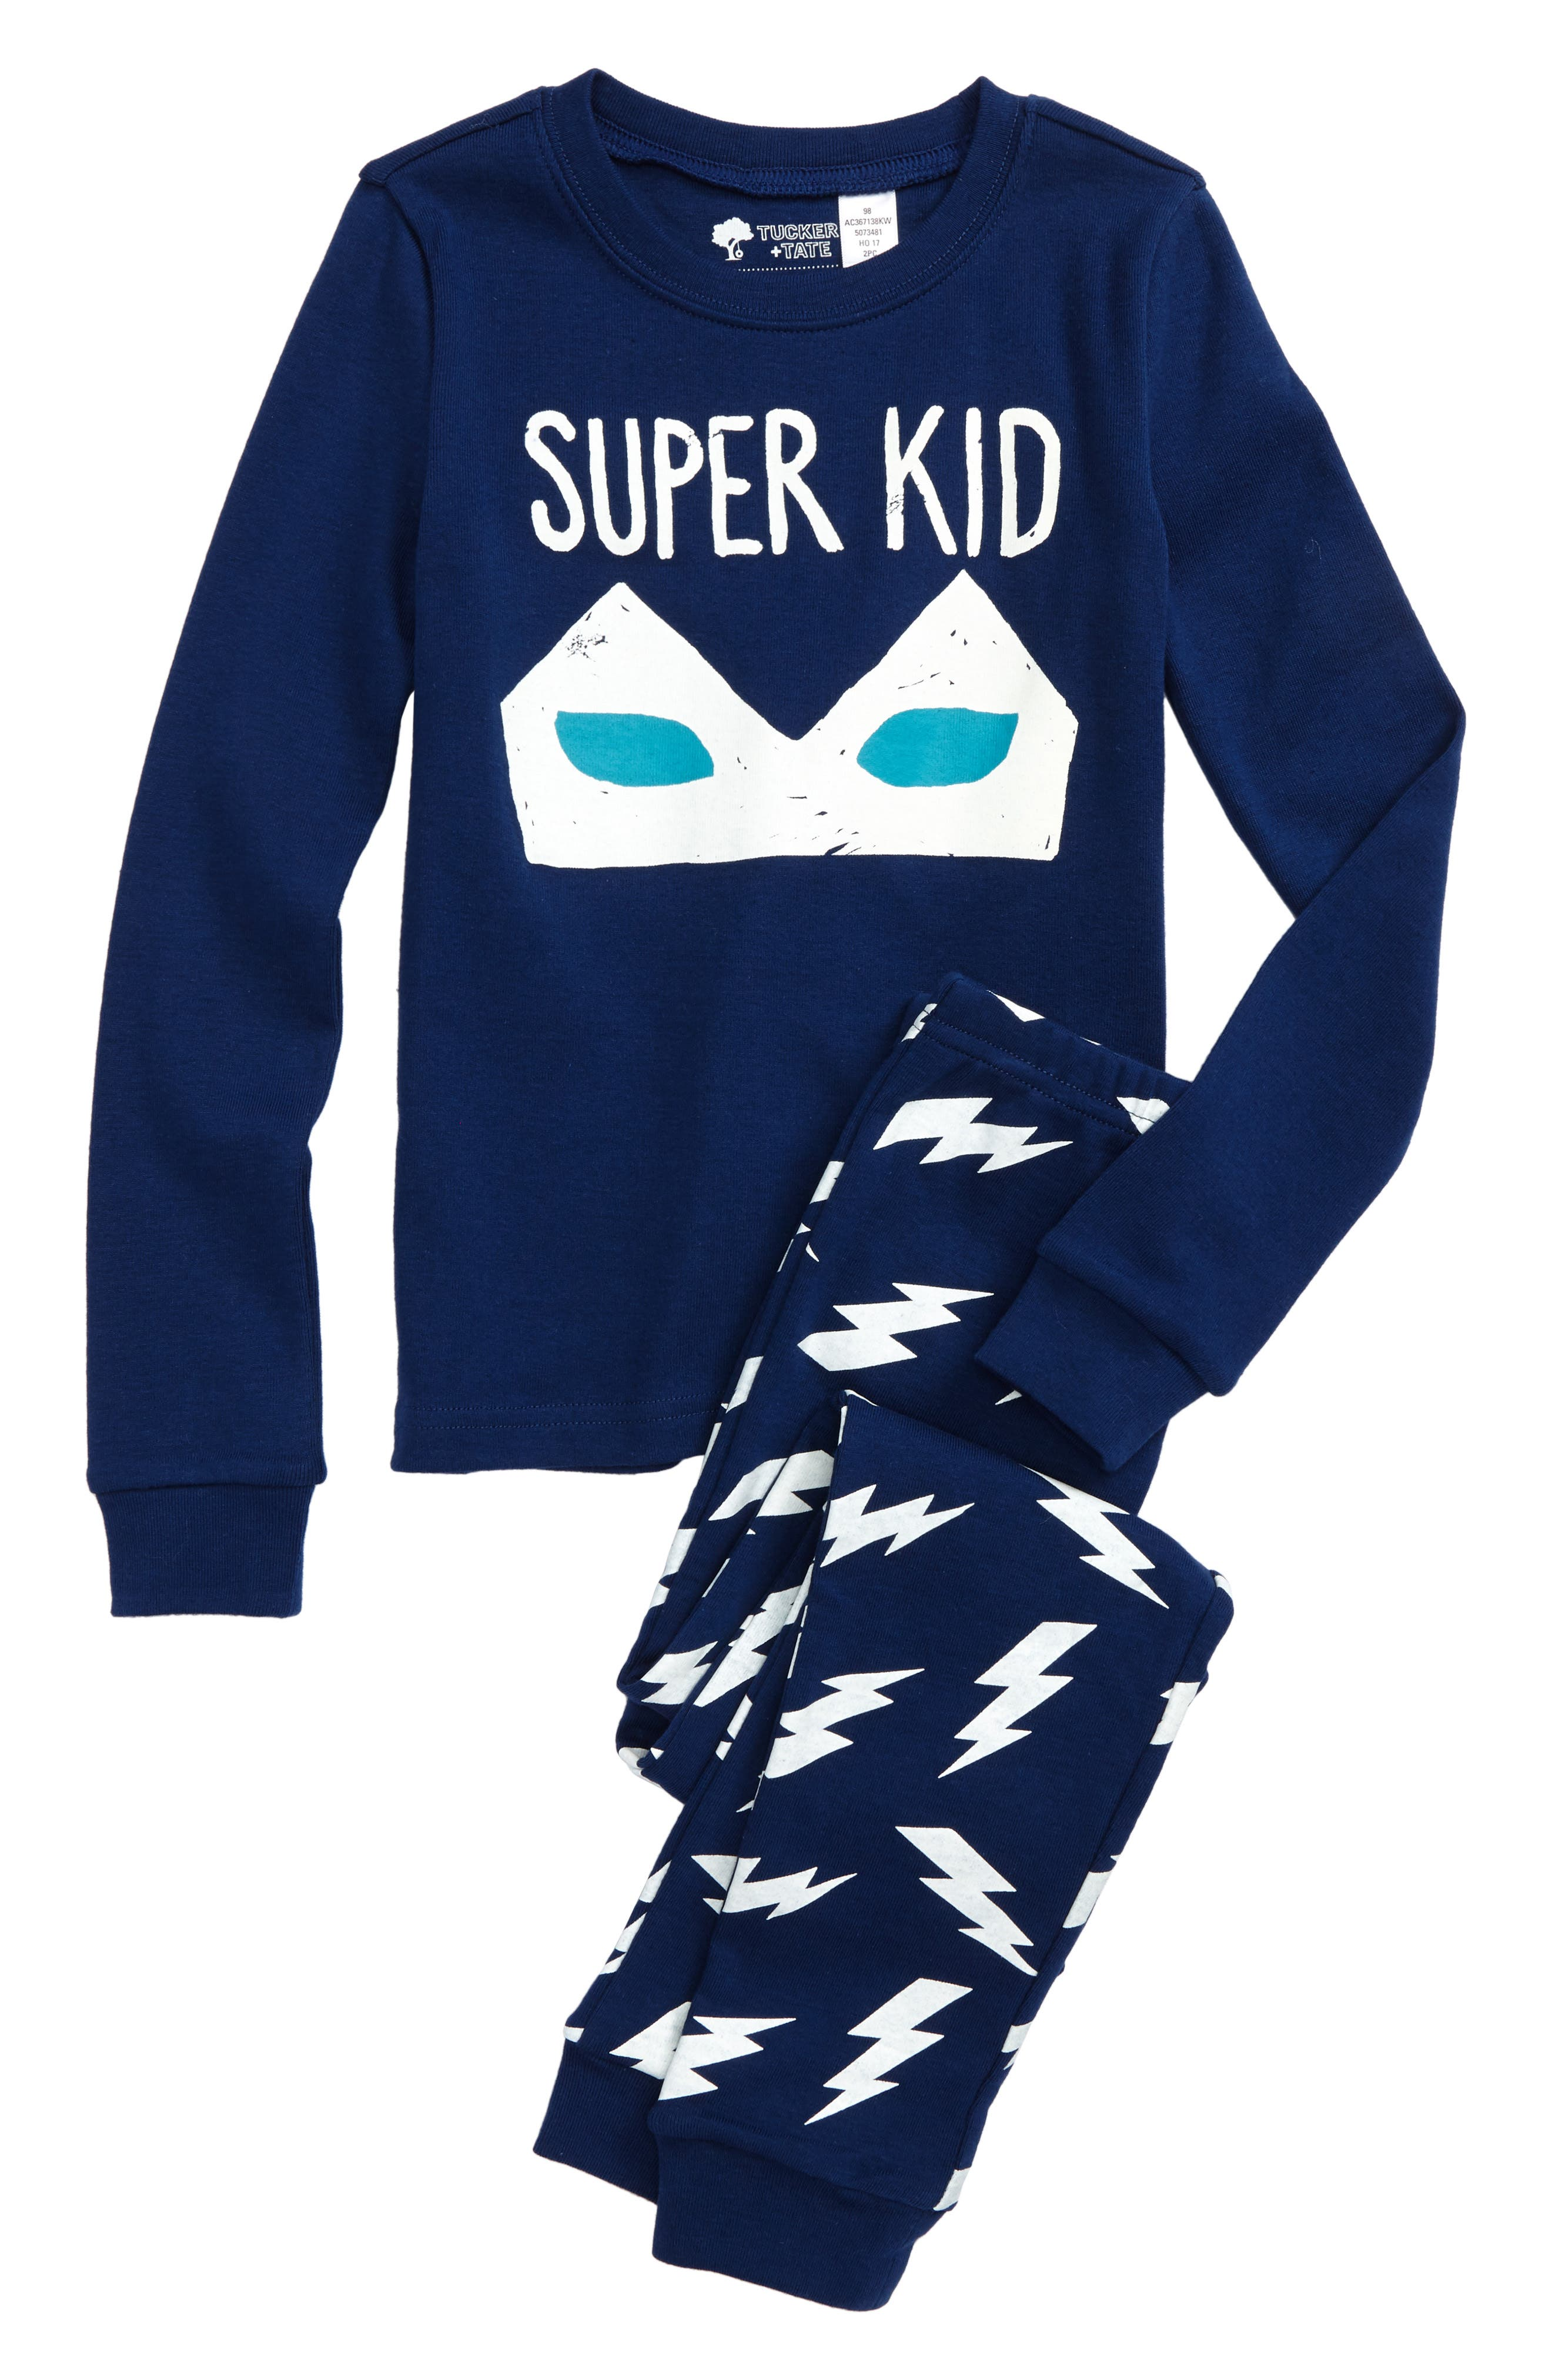 Main Image - Tucker + Tate Super Kid Glow in the Dark Fitted Two-Piece Pajamas (Toddler Boys, Little Boys & Big Boys)